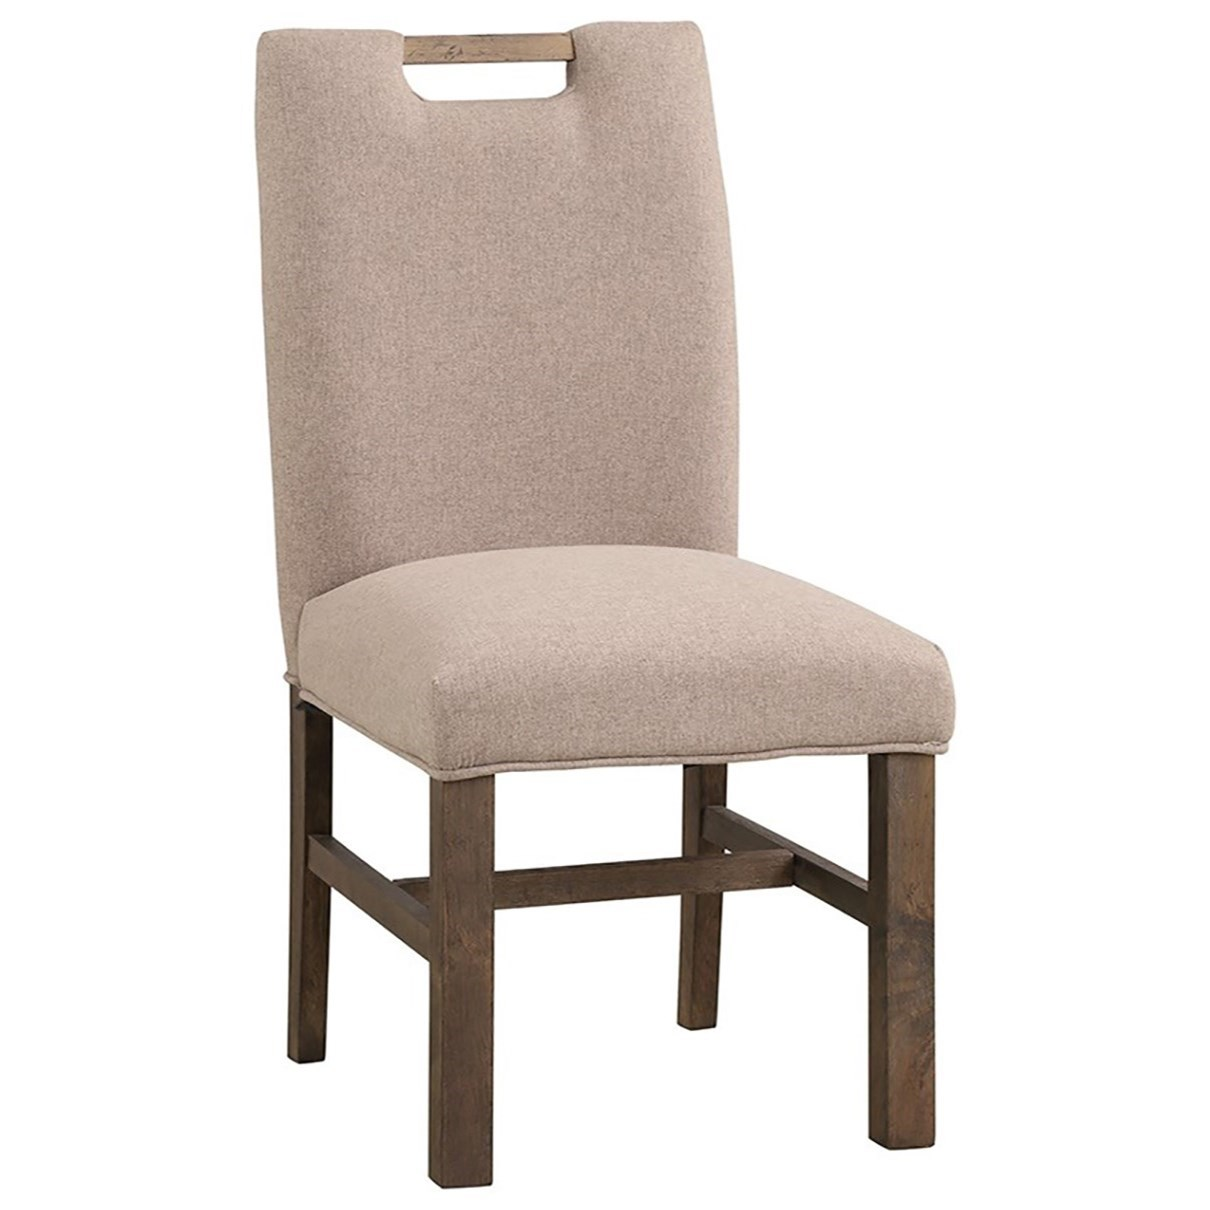 Arcadia Upholstered Side Chair by Legends Furniture at Home Furnishings Direct